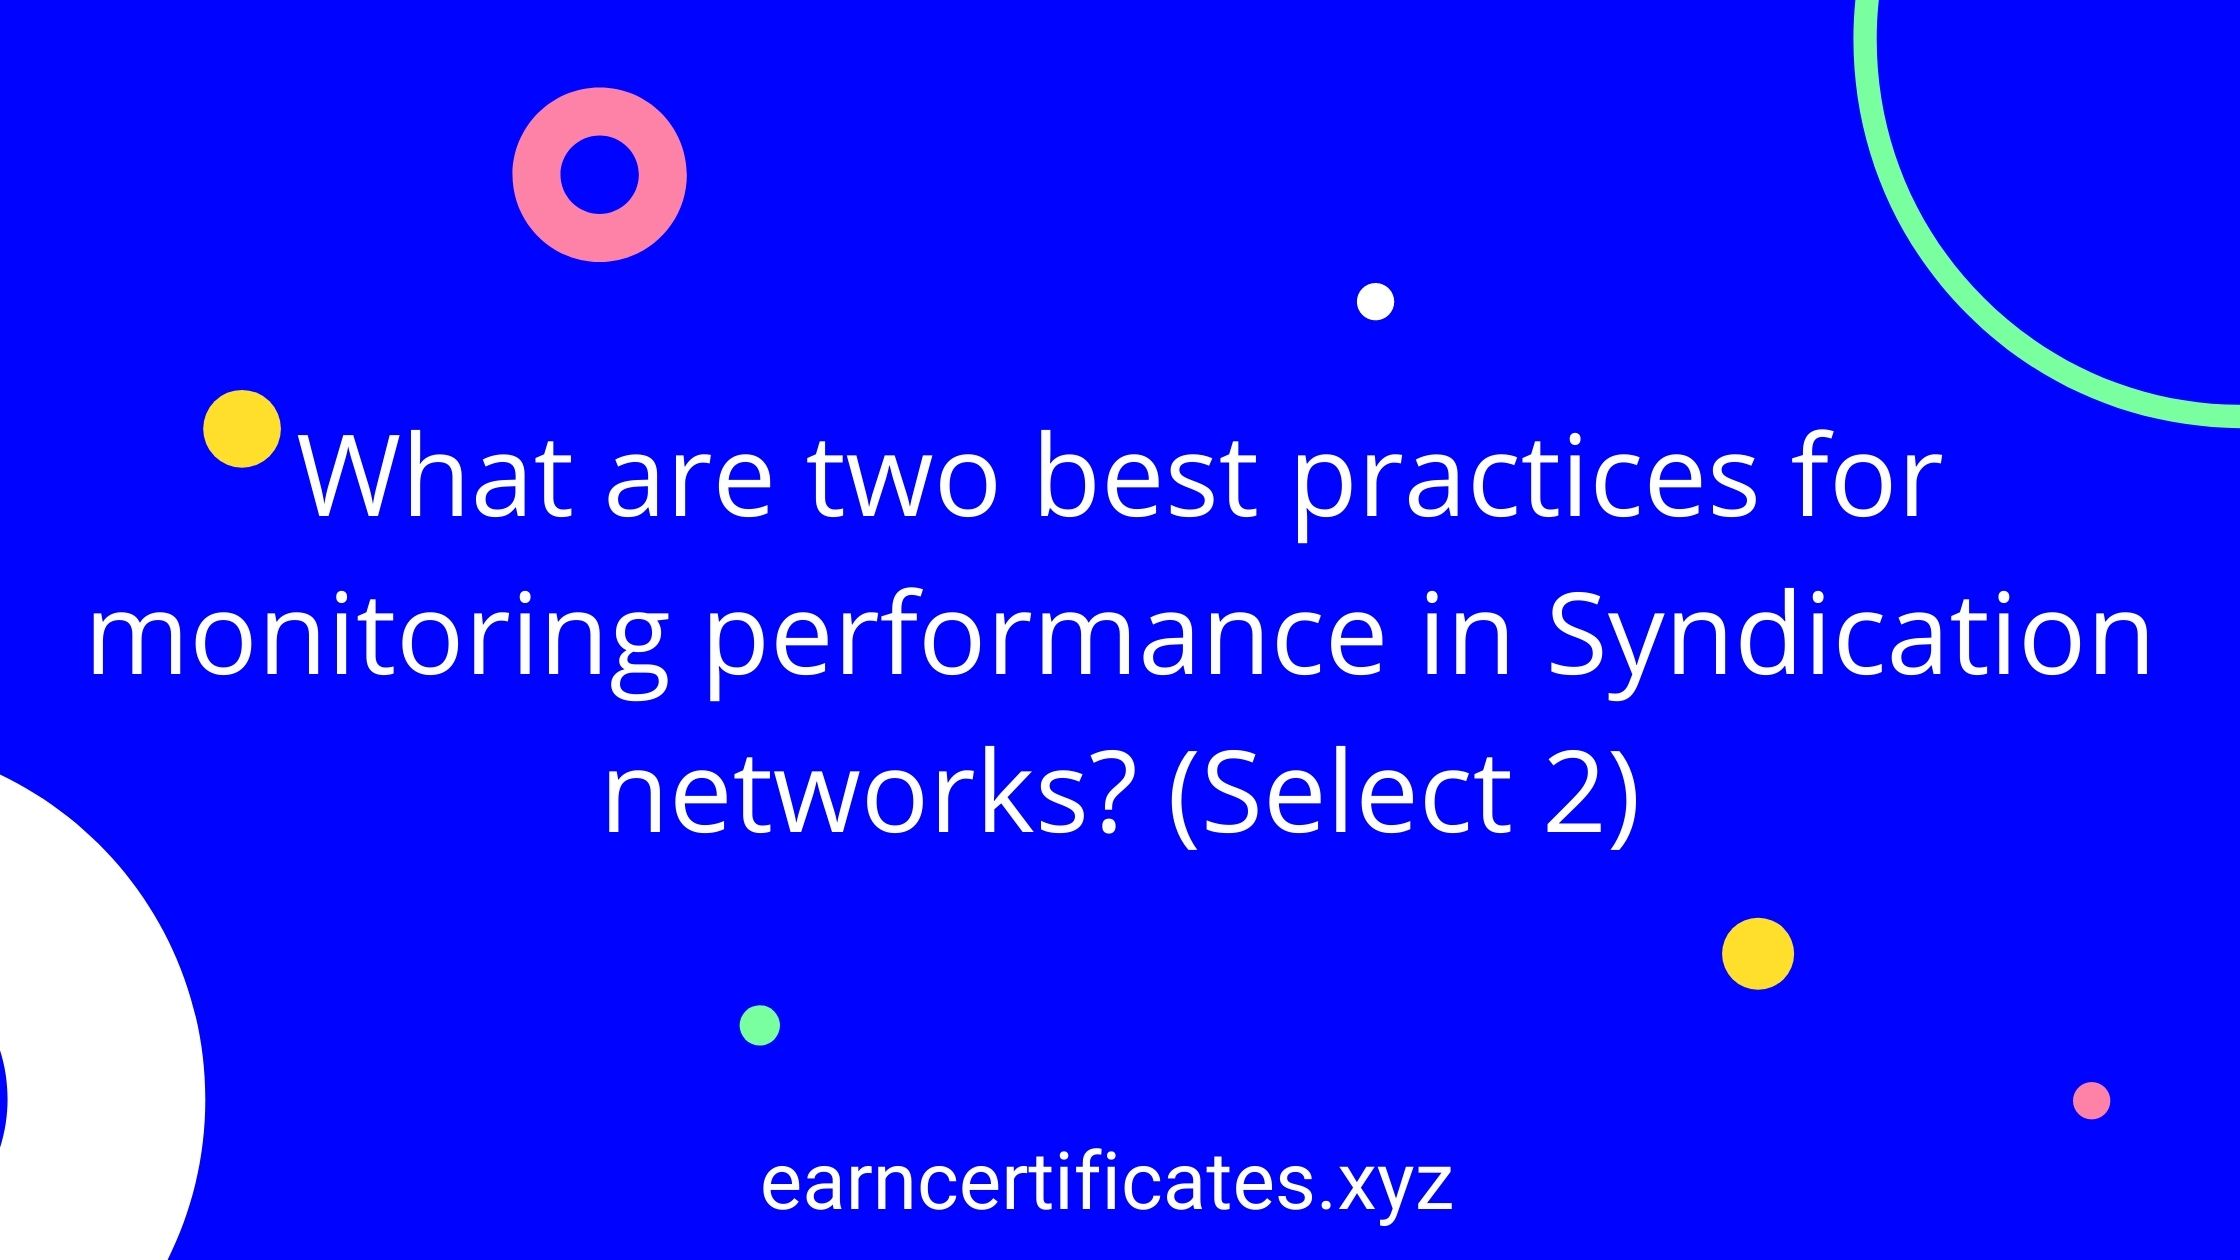 What are two best practices for monitoring performance in Syndication networks? (Select 2)